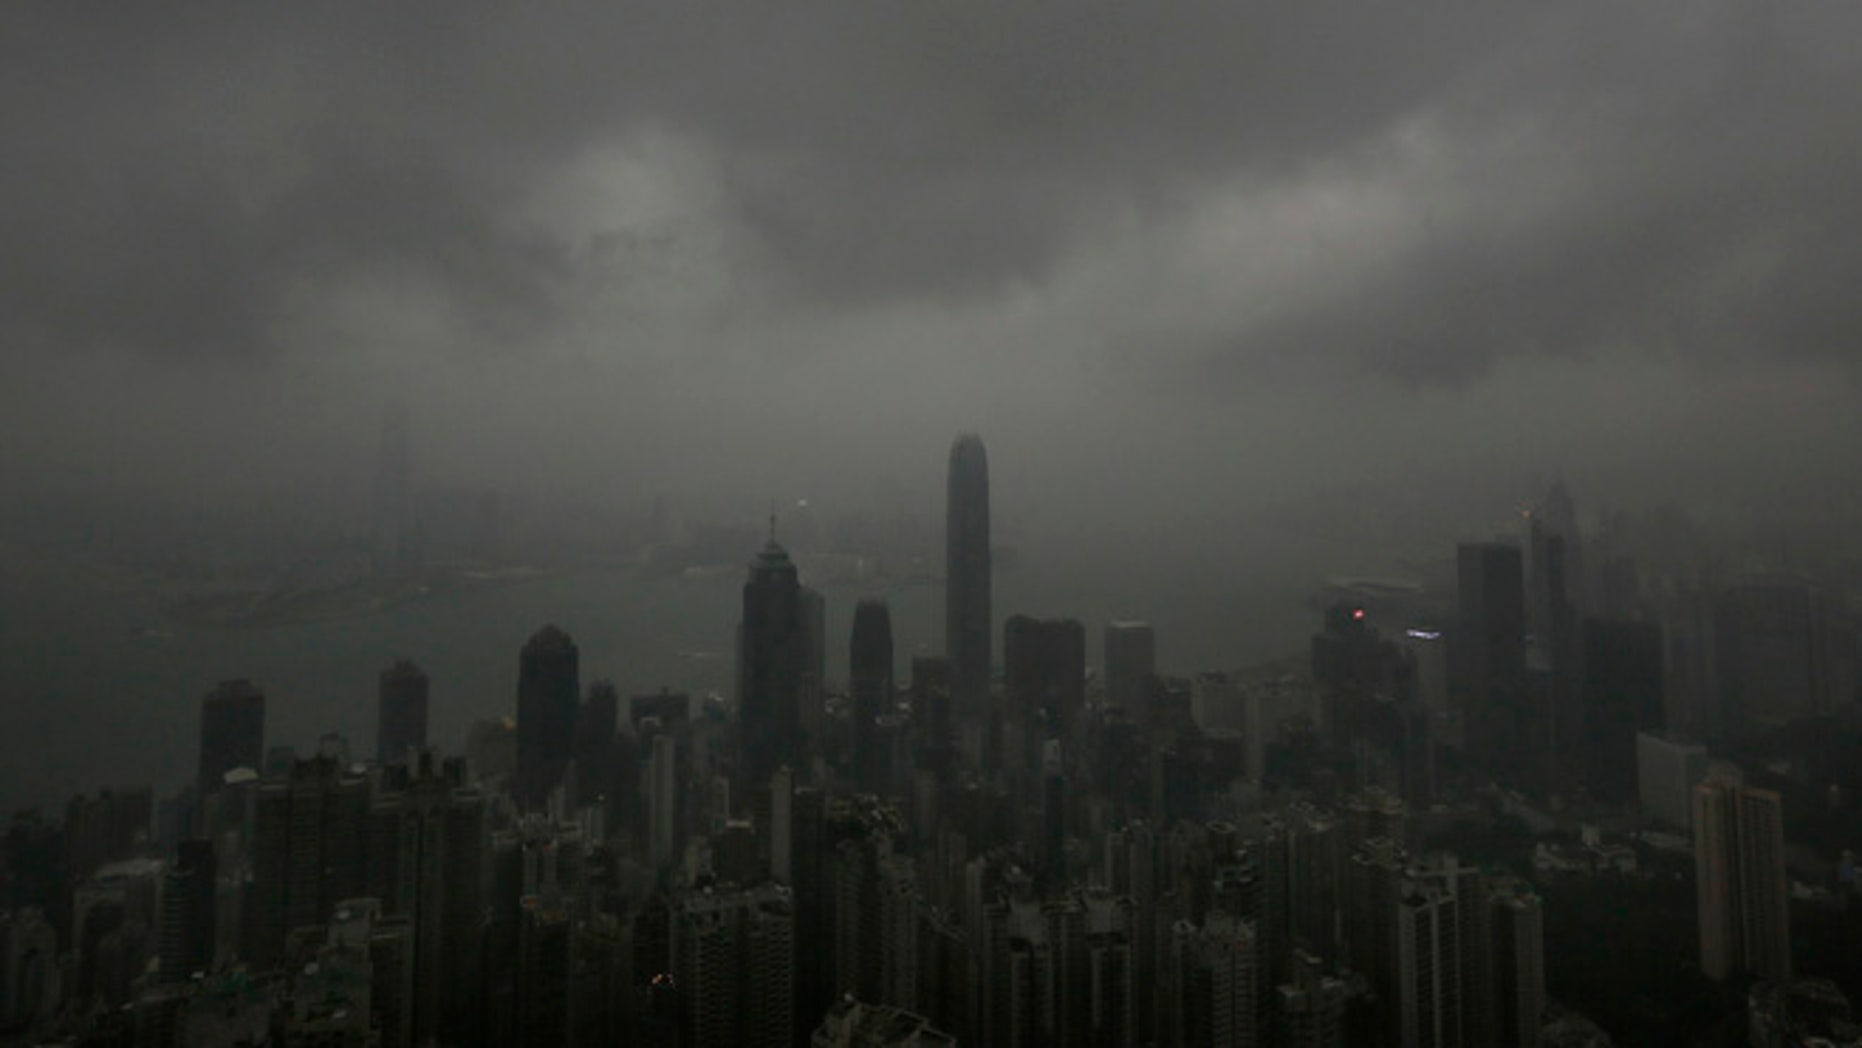 Sept. 22, 2013: Dark clouds hang low over Hong Kong's Victoria Habour. Usagi, the year's most powerful typhoon had Hong Kong in its cross-hair on Sunday after sweeping past the Philippines and Taiwan and pummeling island communities with heavy rains and fierce winds. The typhoon was grinding westward and expected to make landfall close to Hong Kong late Sunday or early Monday.